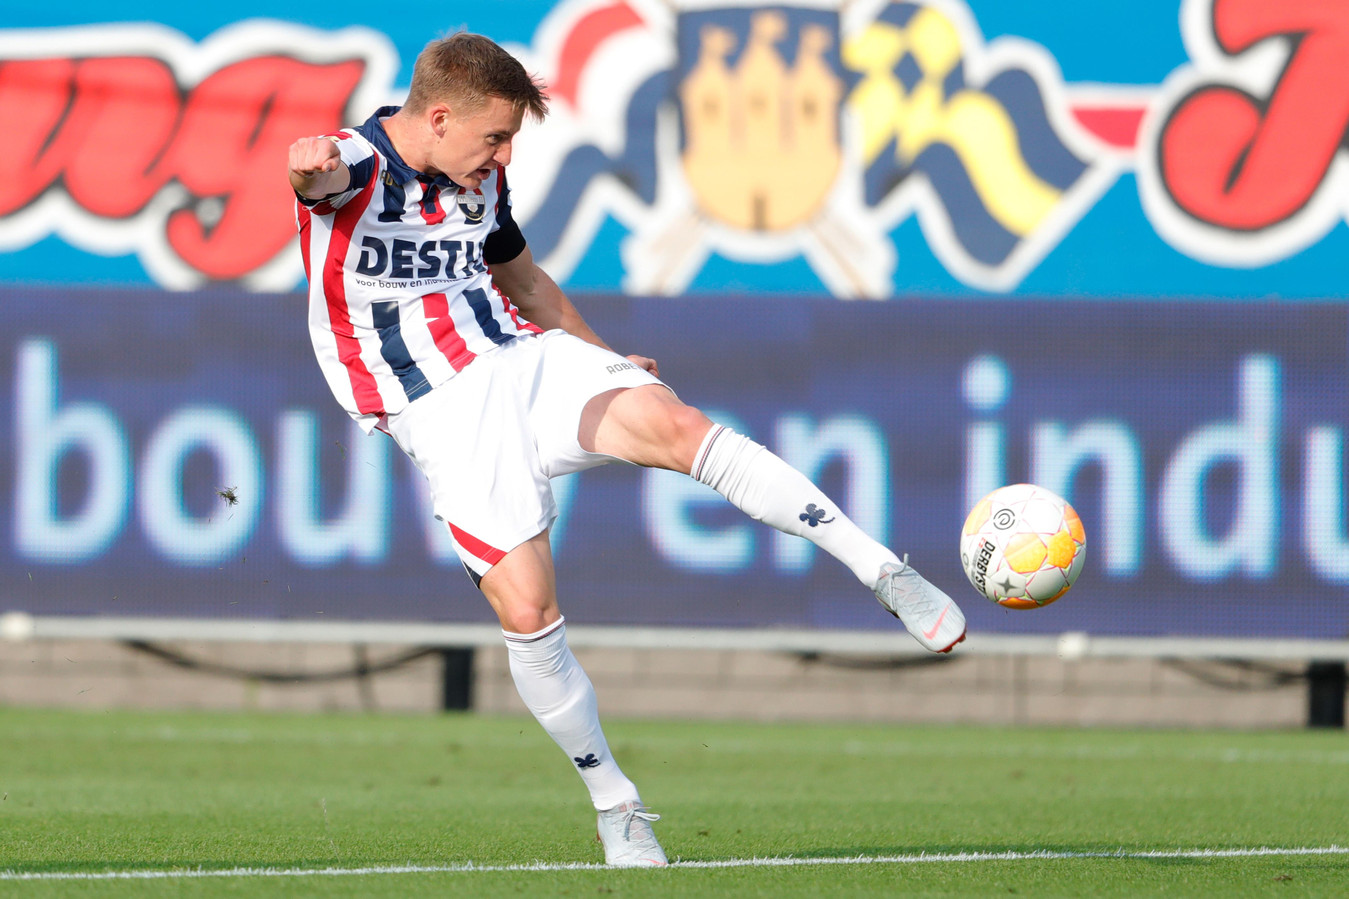 James McGarry in actie voor Willem II.